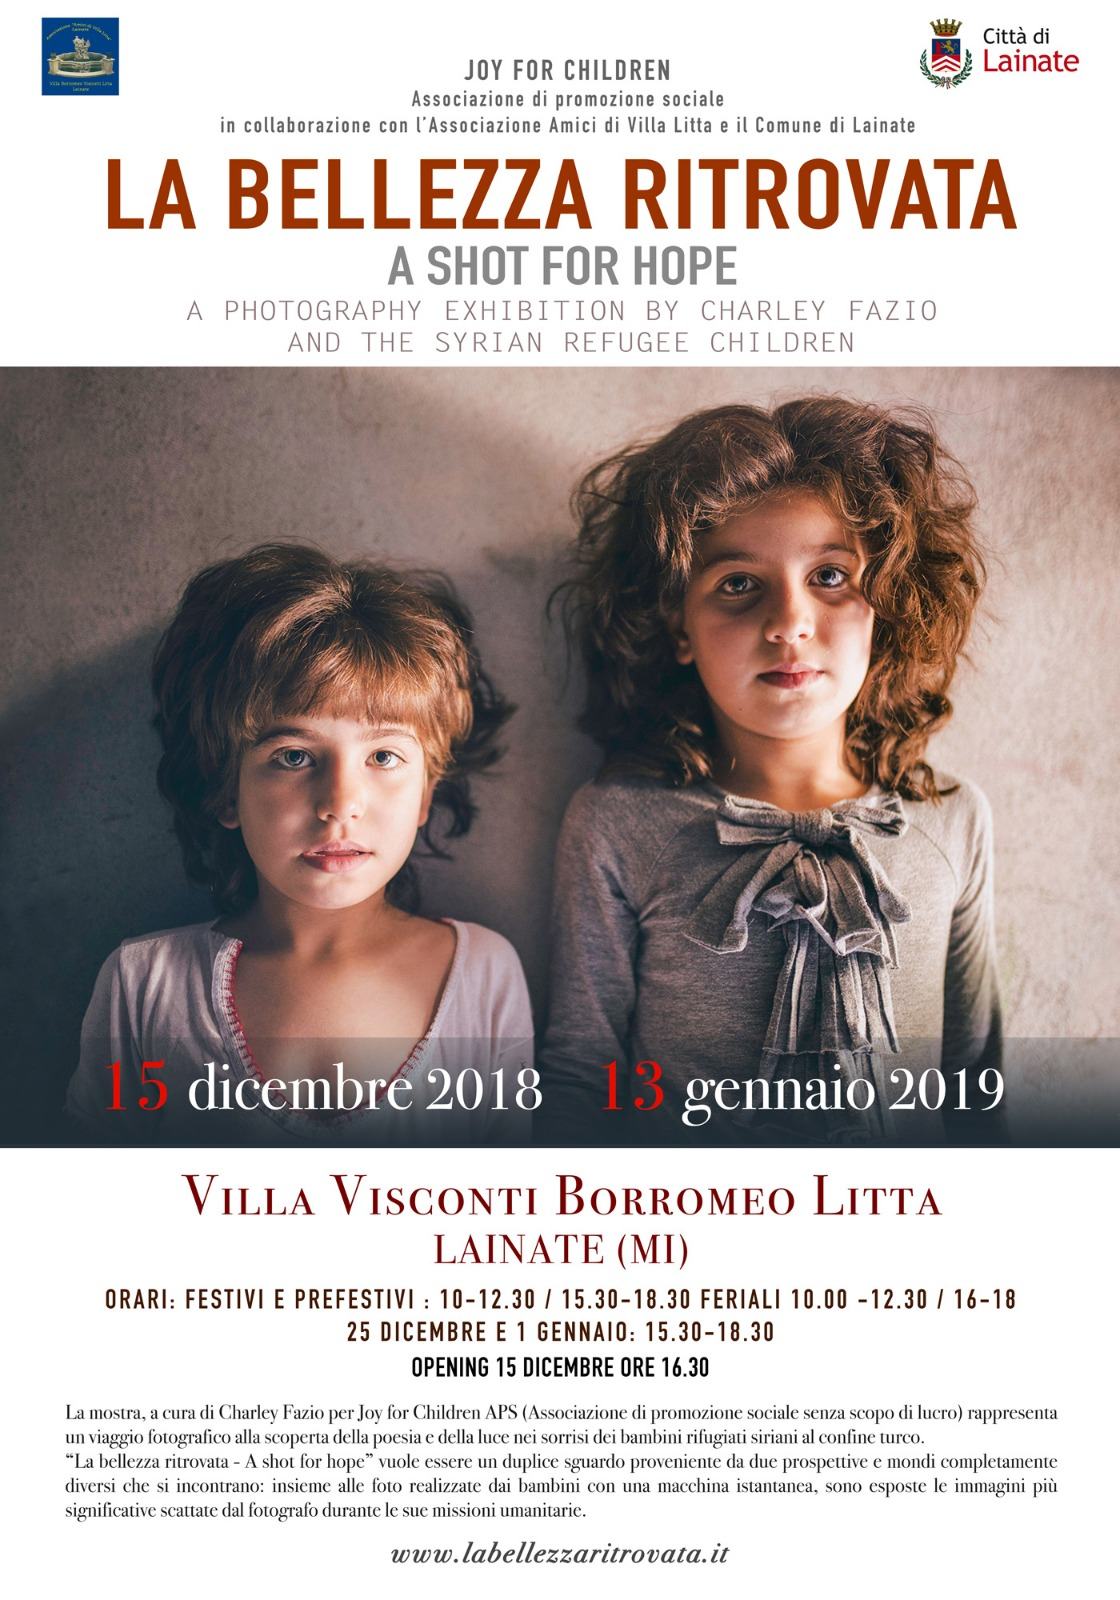 Mostra fotografica 'La bellezza ritrovata – A shot for hope